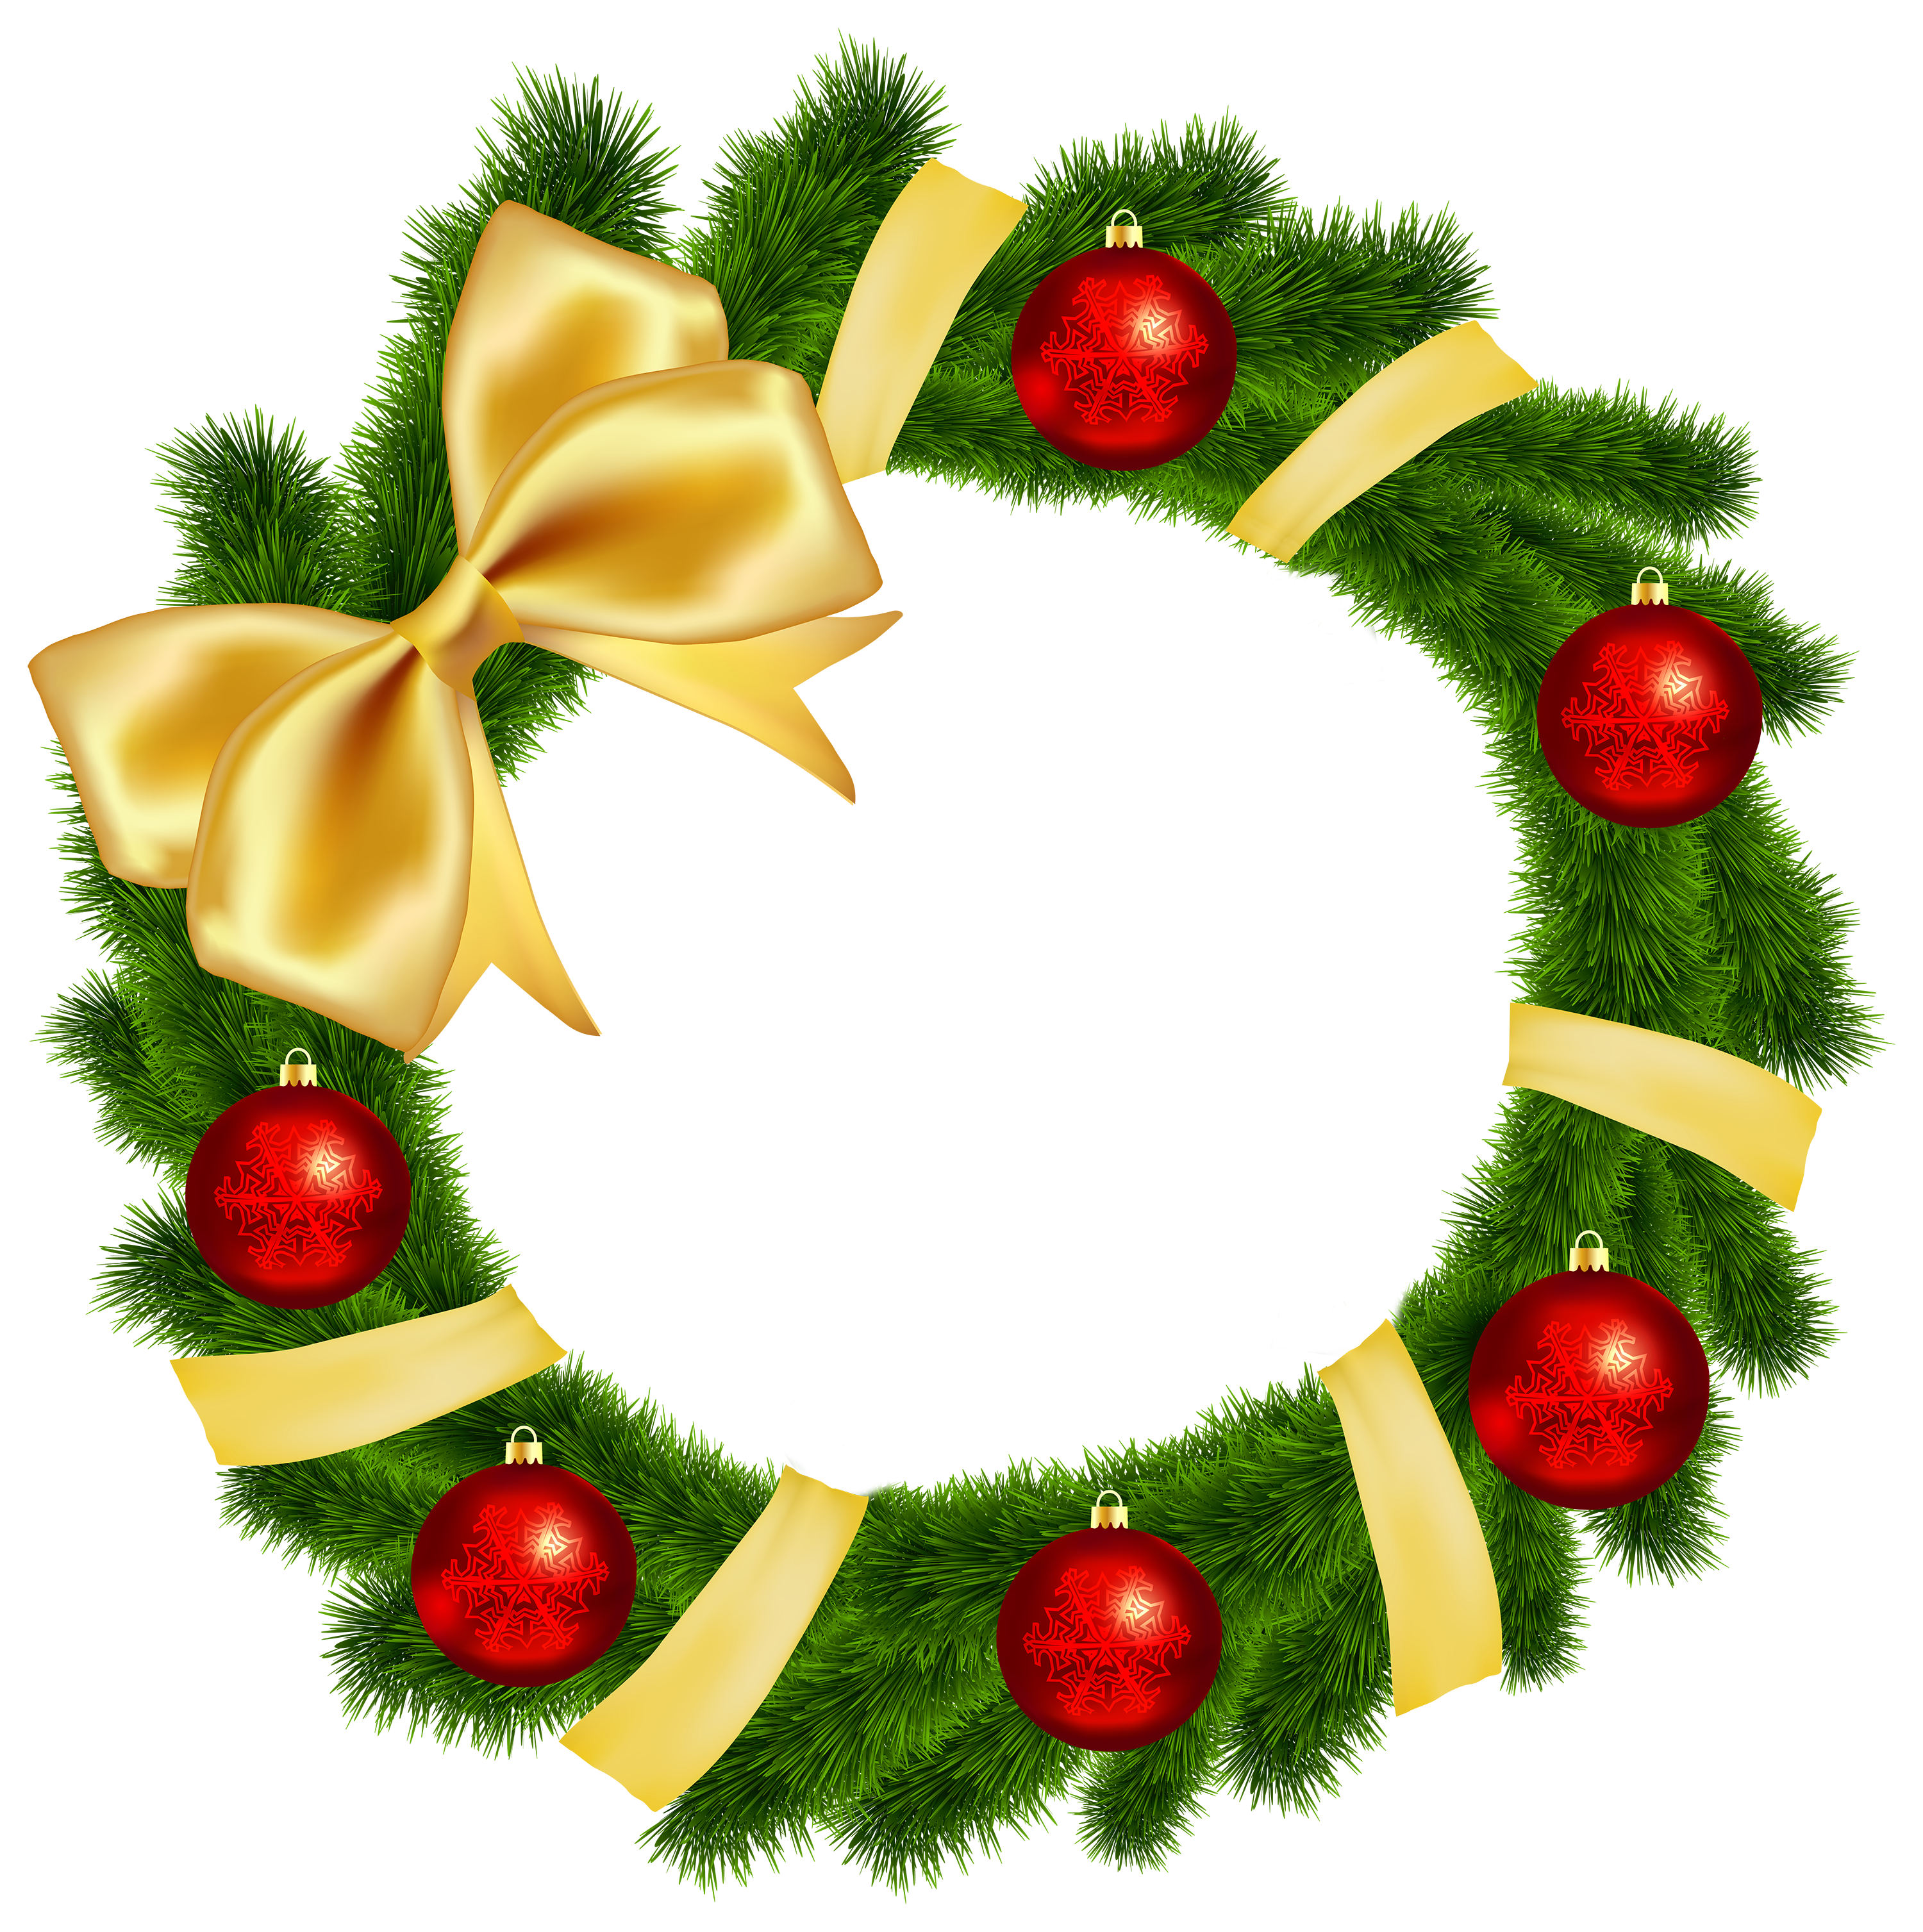 Xmas wreaths images clipart vector download Christmas Wreath with Yellow Bow Transparent PNG Clip Art Image ... vector download